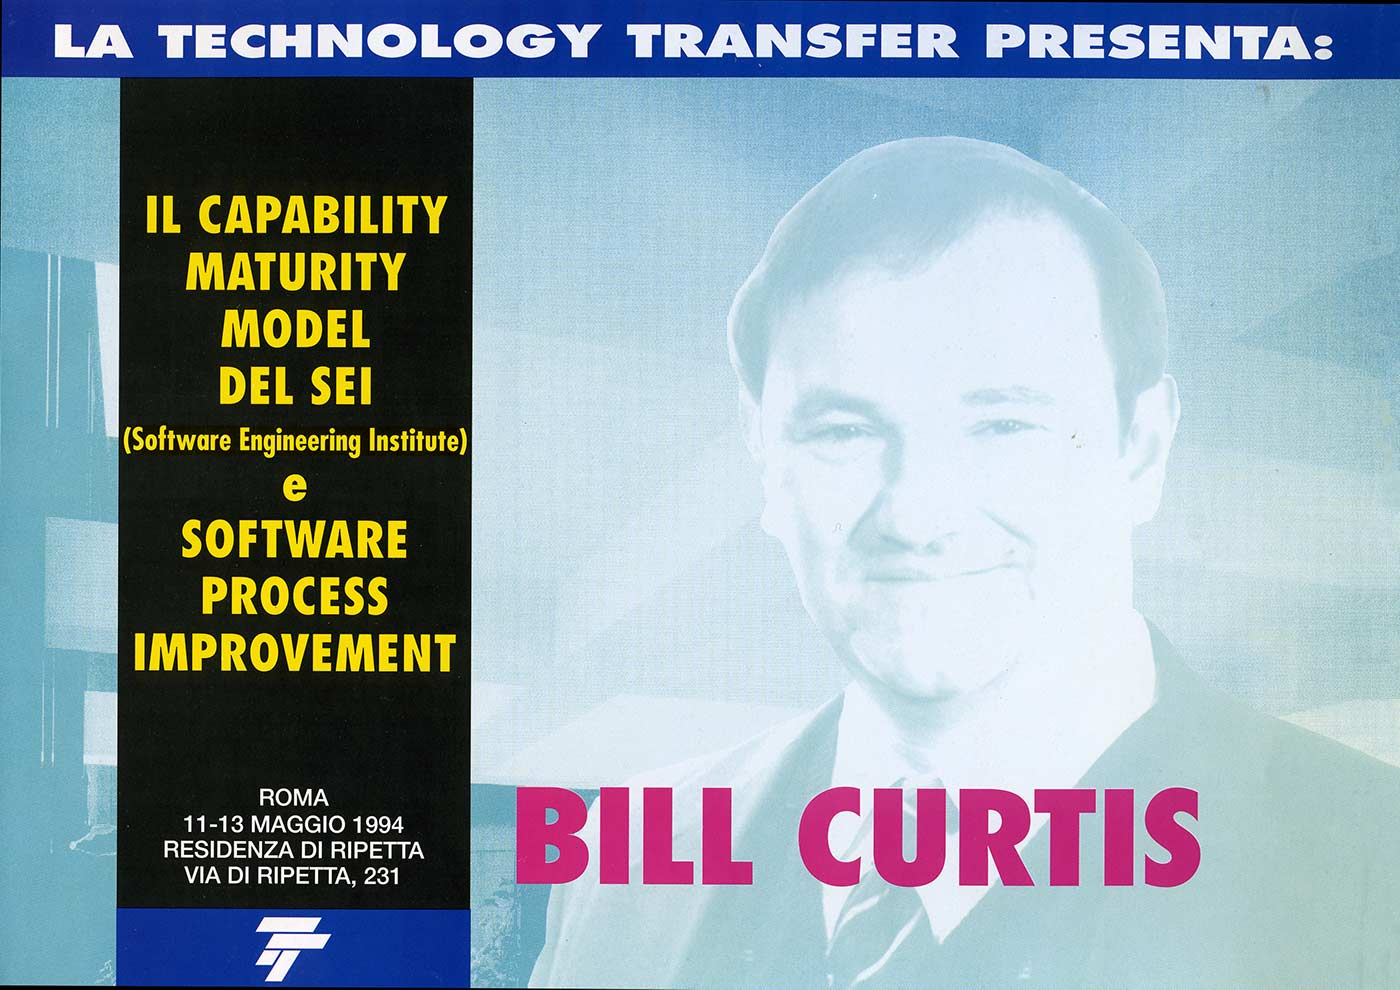 bs02_BillCurtis